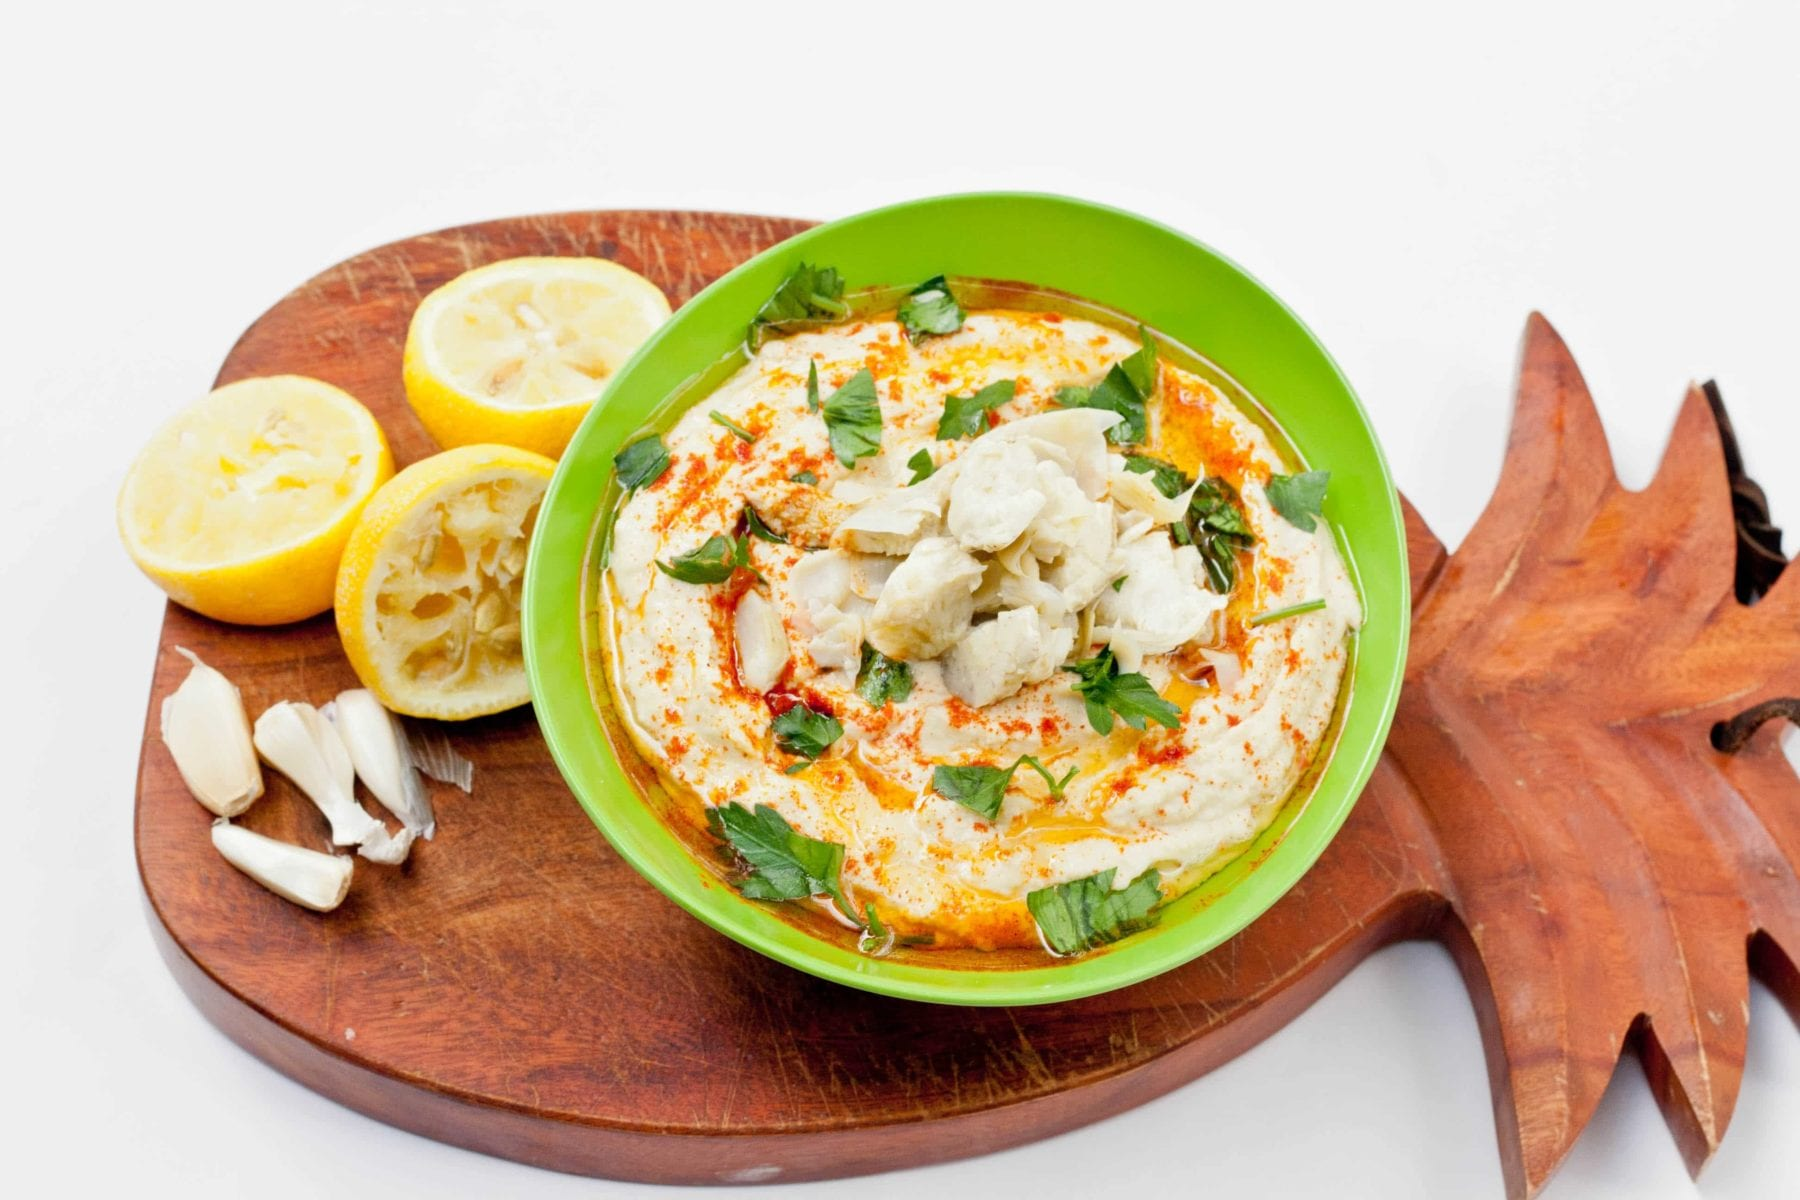 lemon artichoke hummus